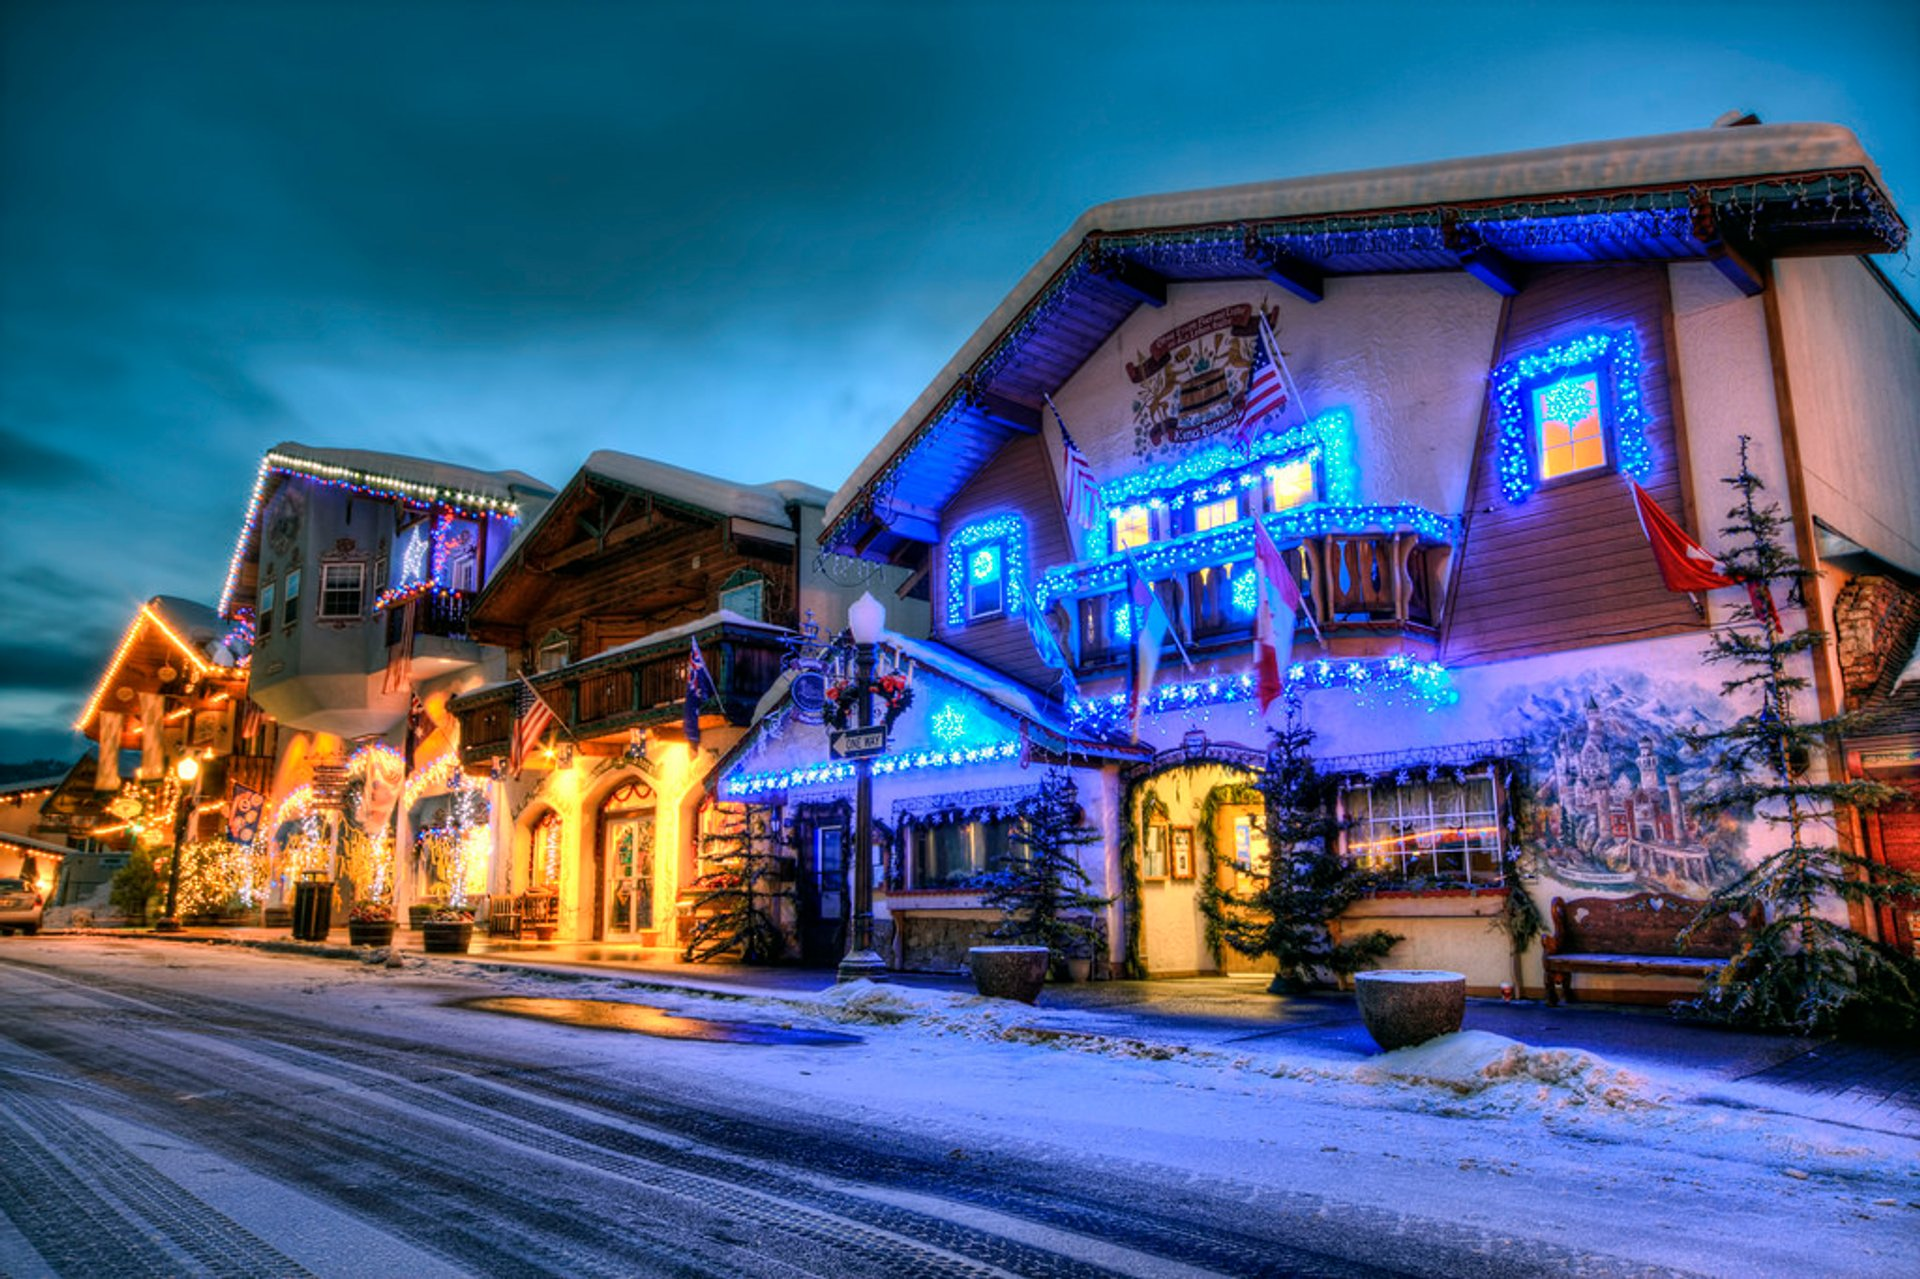 Leavenworth Christmas Lighting Festival in Seattle 2019 - Best Time